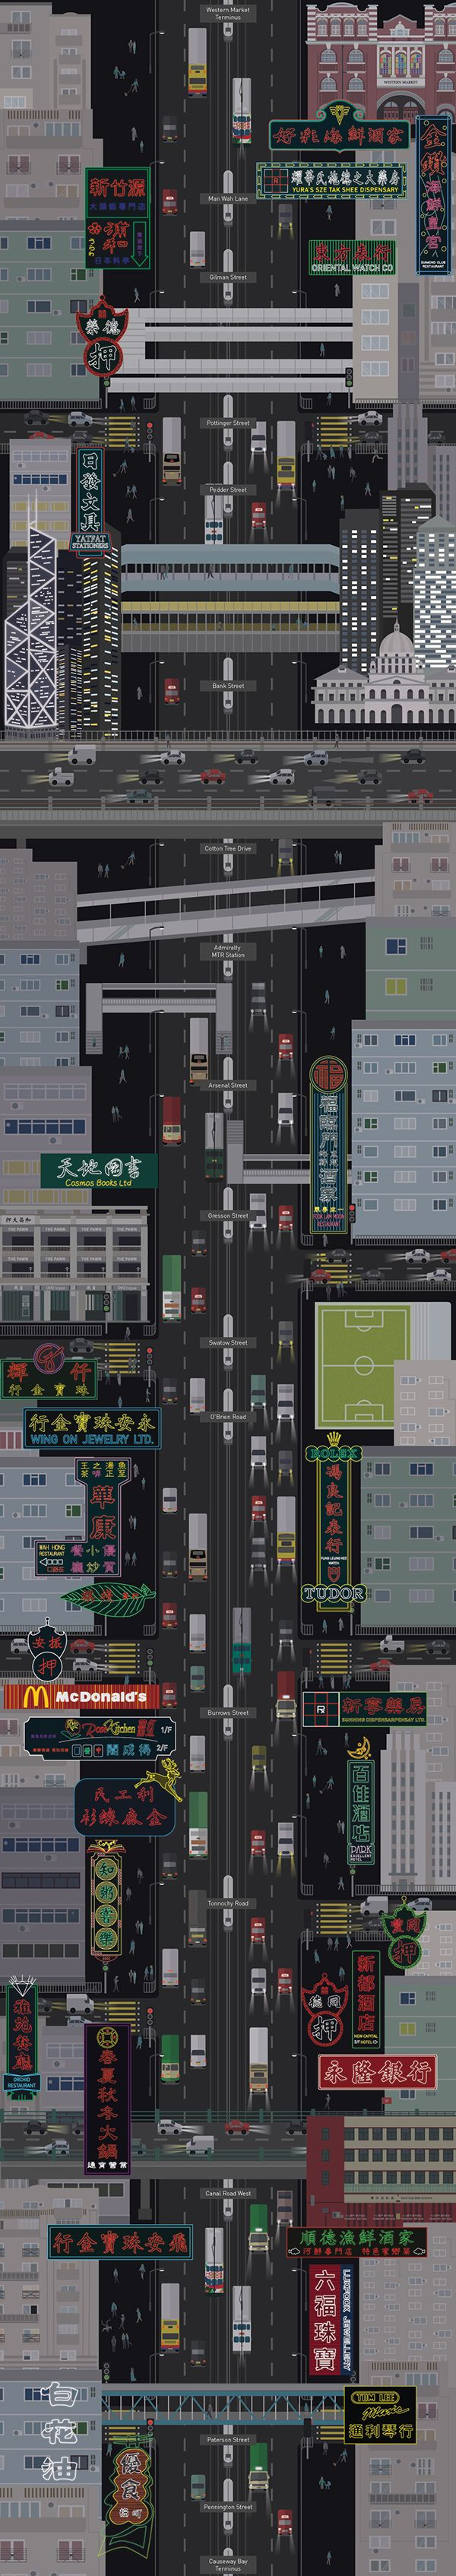 Hong Kongs neon signs x tram interactive map project http://www.hongkongbuzz.com/